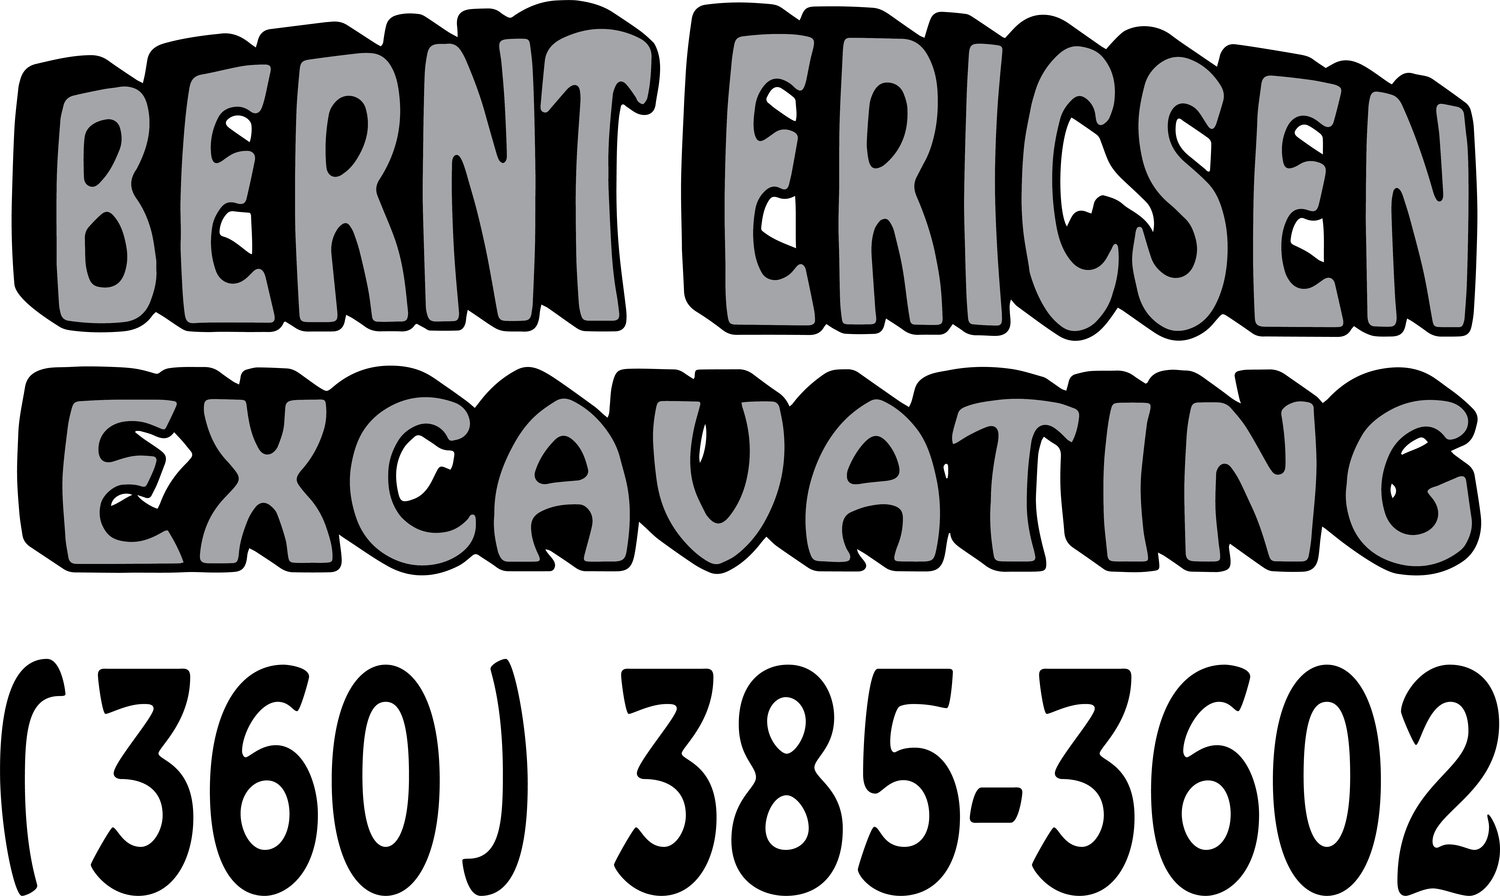 Bernt Ericsen Excavating | We Dig Jefferson County Washington